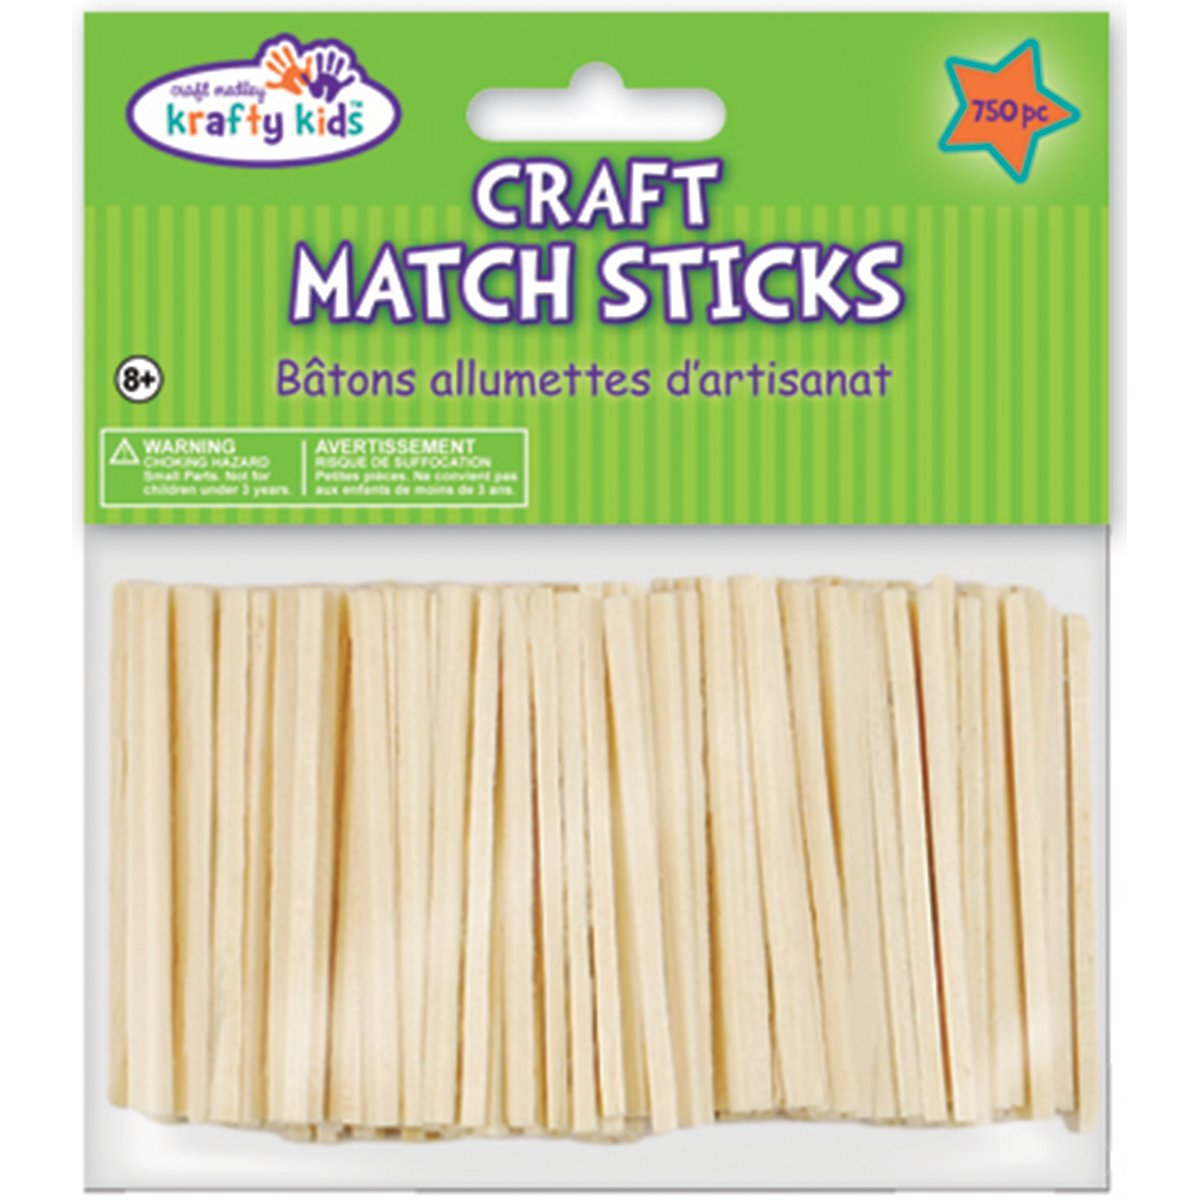 Multicraft Imports Krafty Kids CW524 Craftwood Natural Craft Match Sticks, 2in, 750-Piece